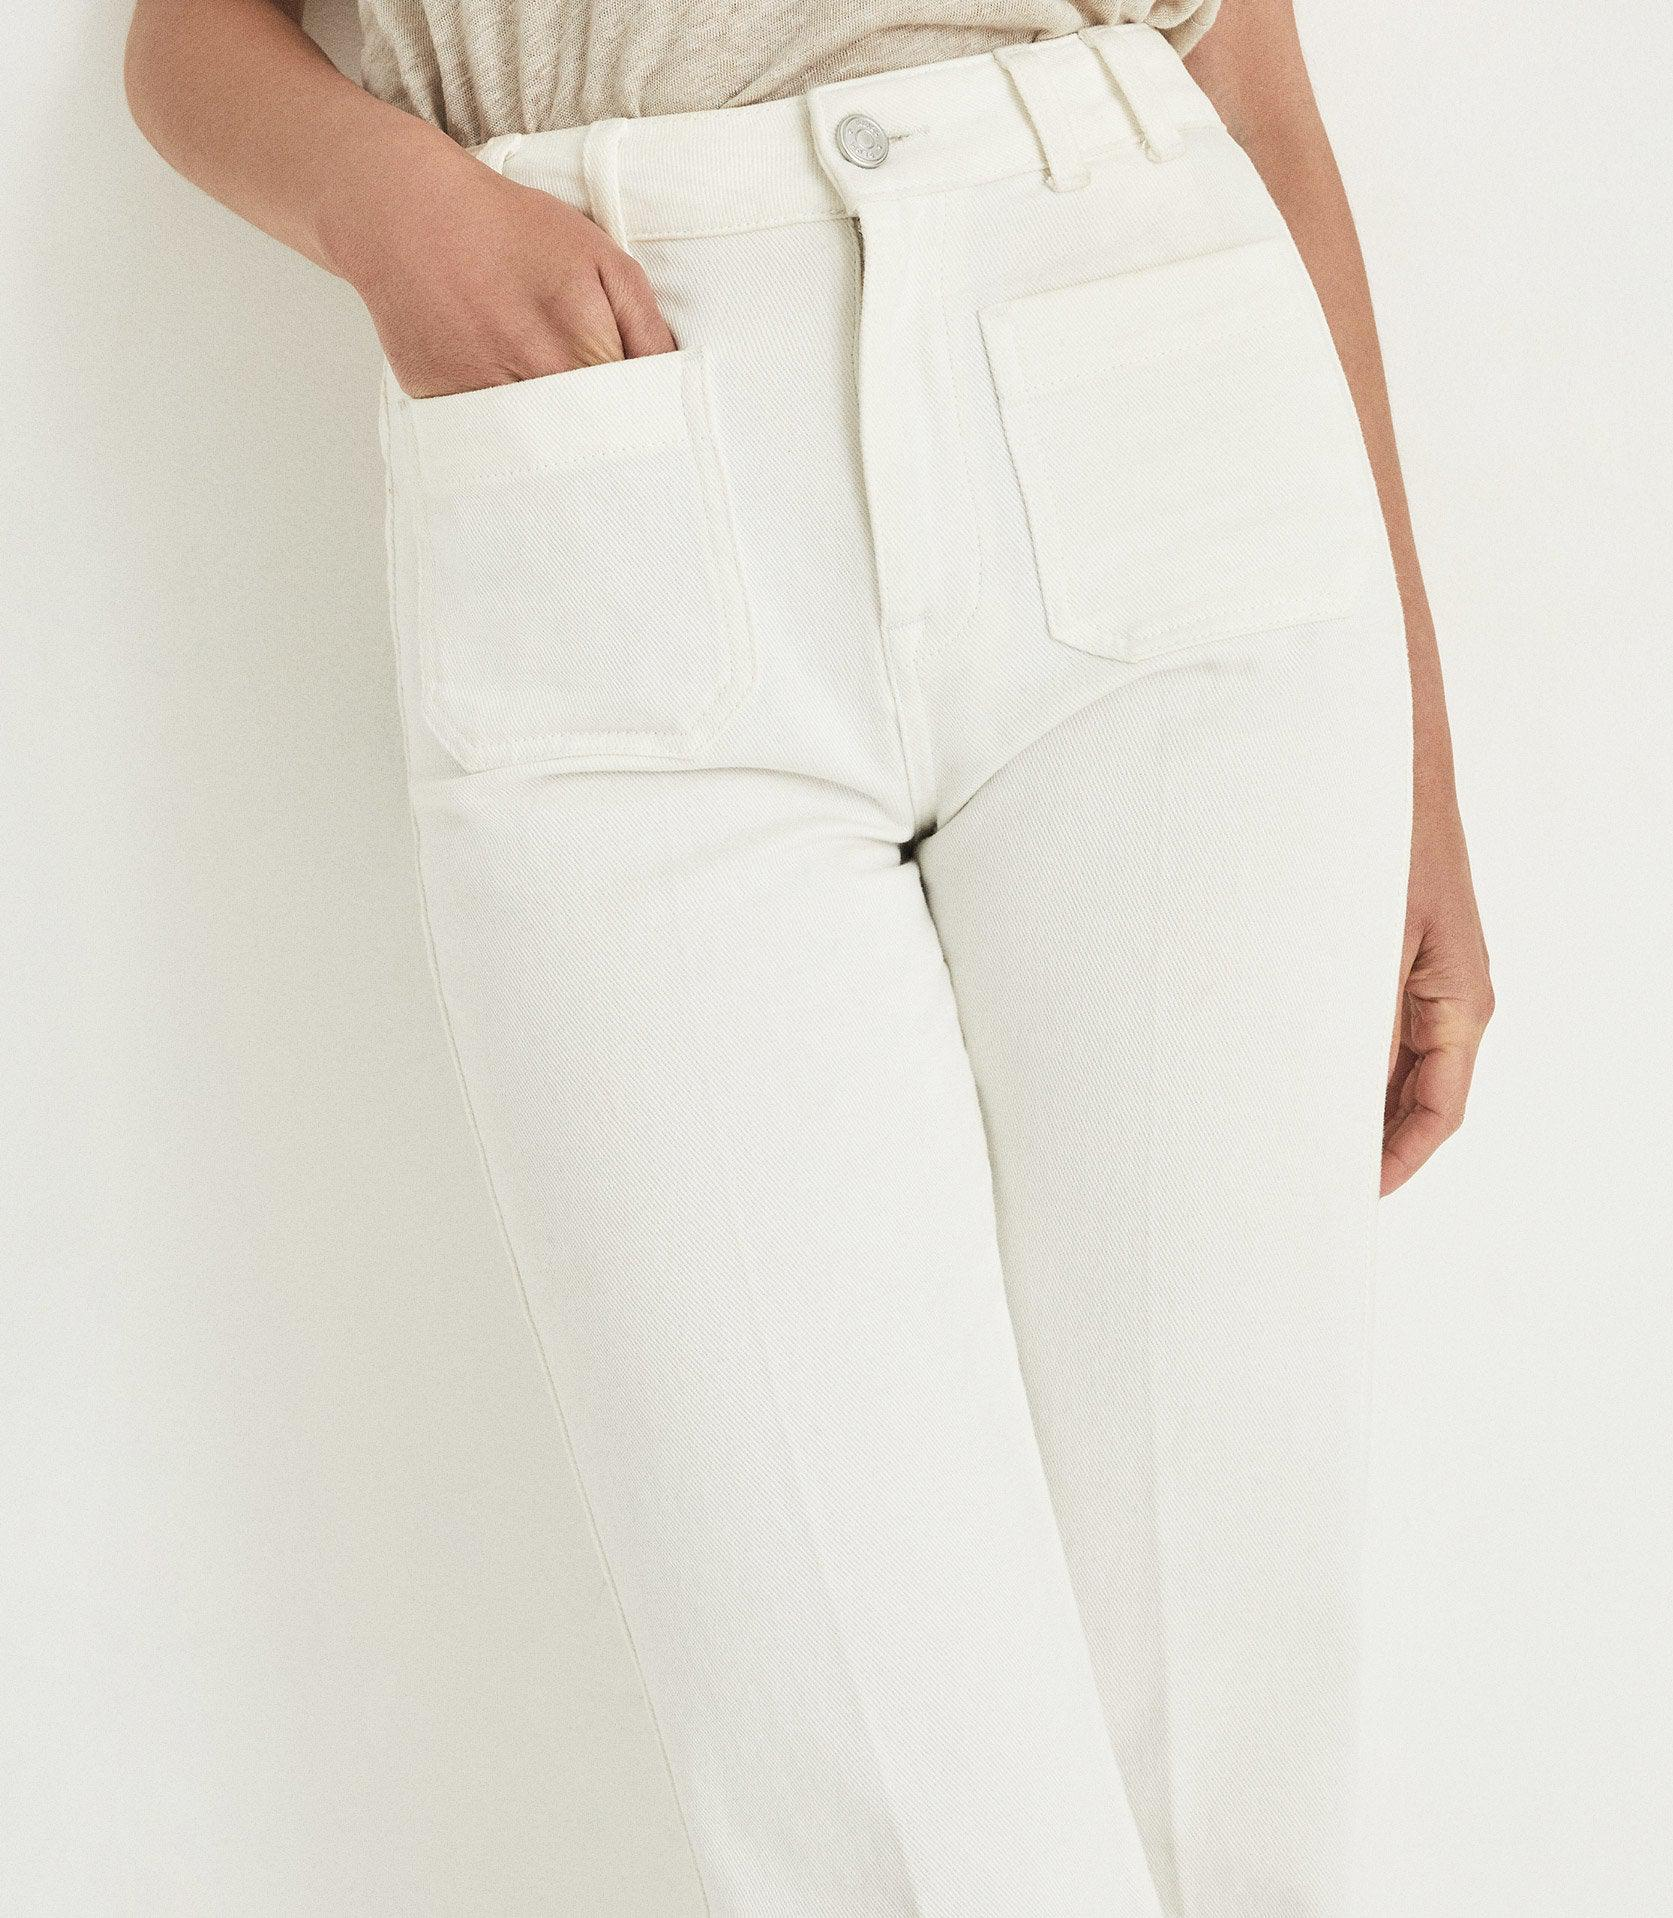 ISA - HIGH RISE FLARED JEANS 3